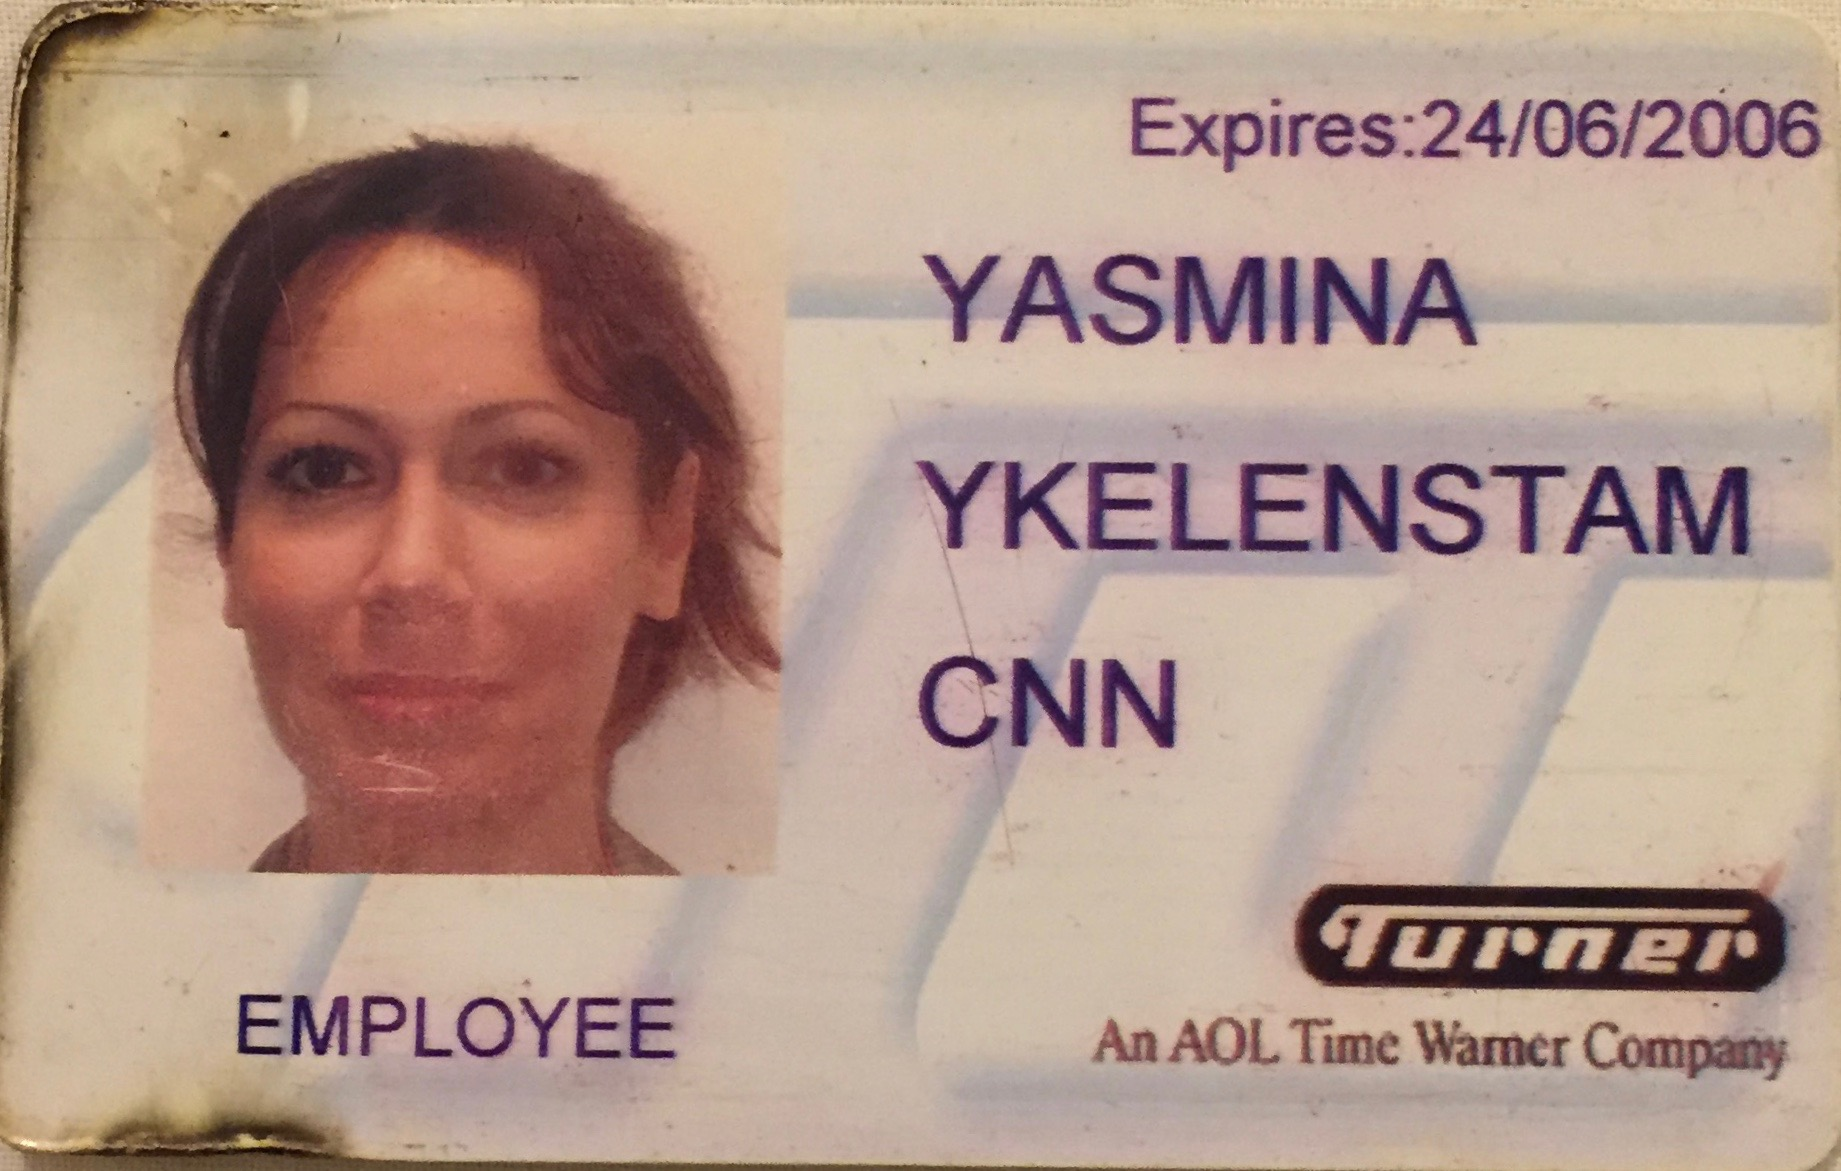 My CNN London bureau press pass